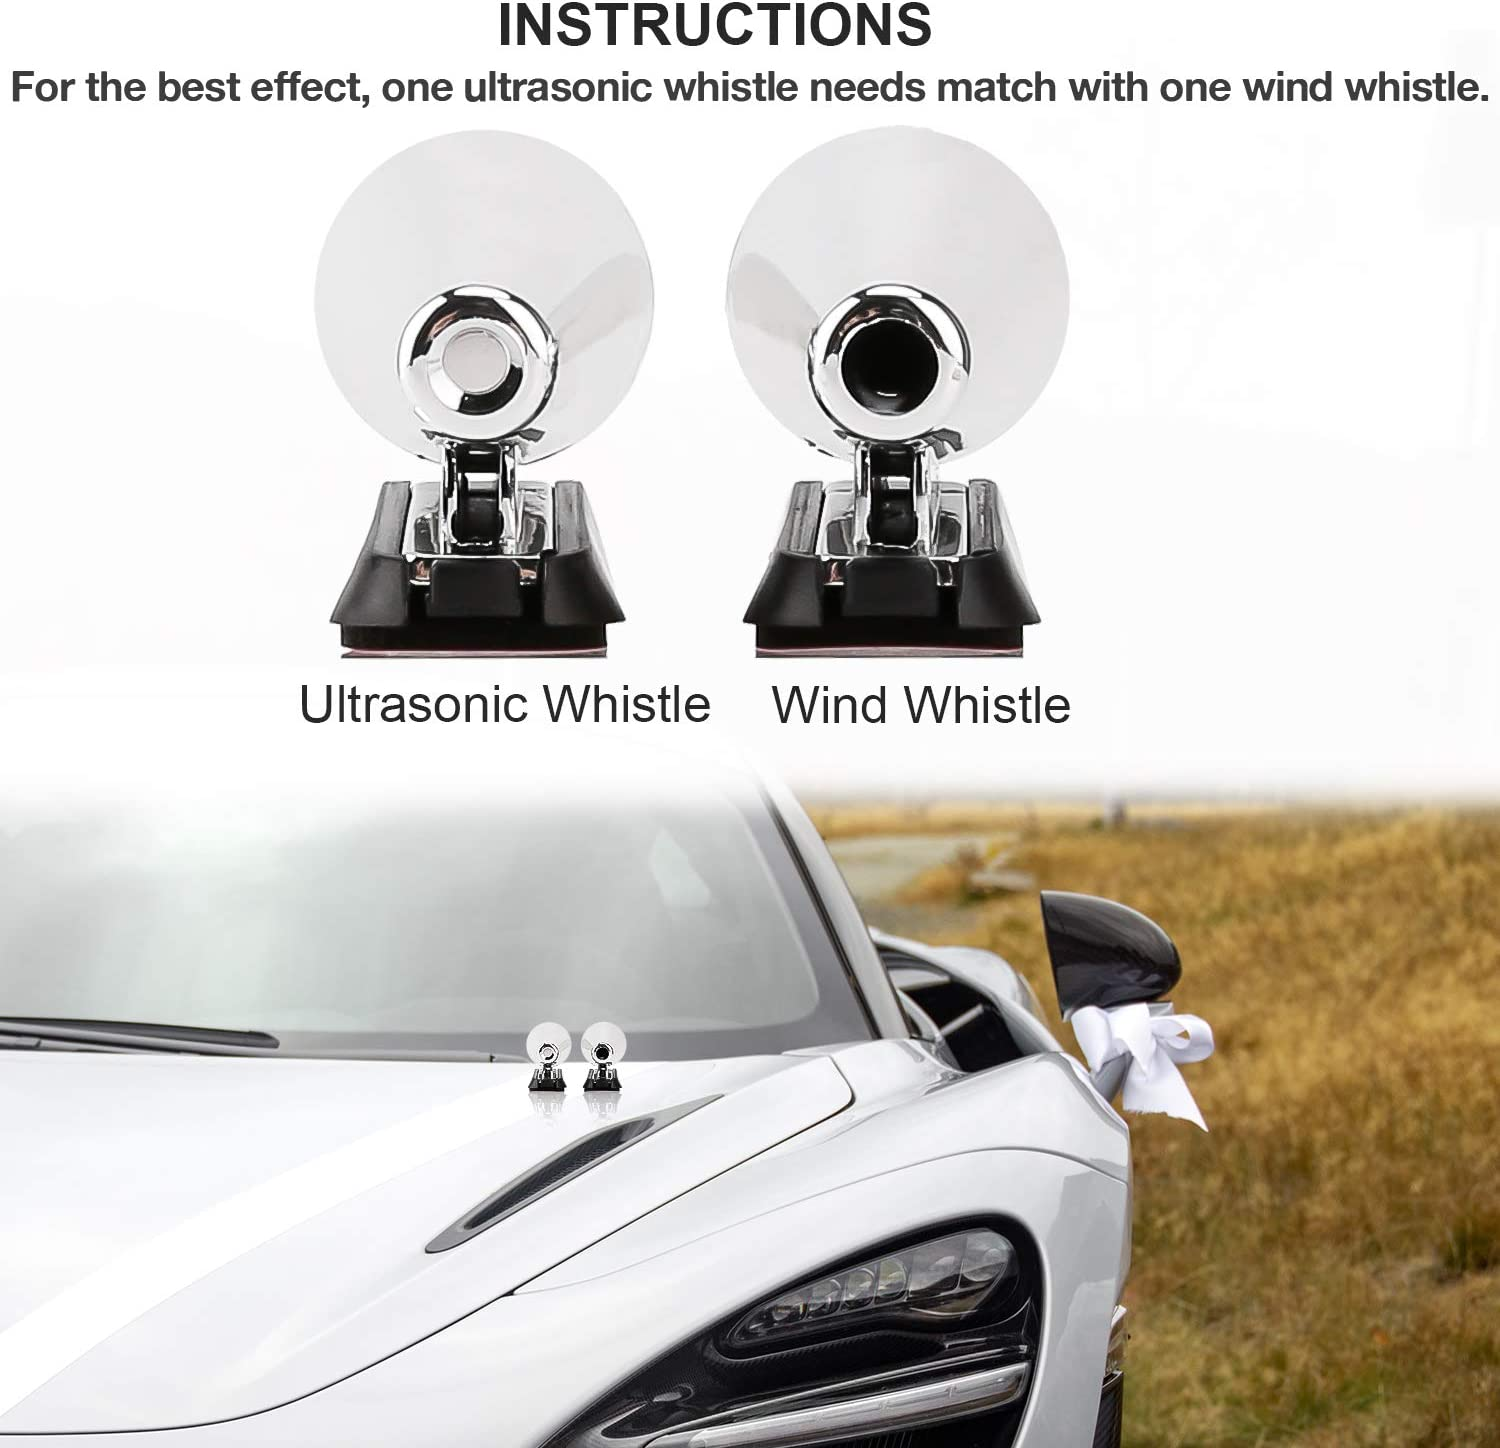 LUTER 4 PCS Deer Whistle Deer Warning Devices for Car Vehicles Motorcycles Save Wild Animals Avoid Deer//Mammal Collisions Car Safety